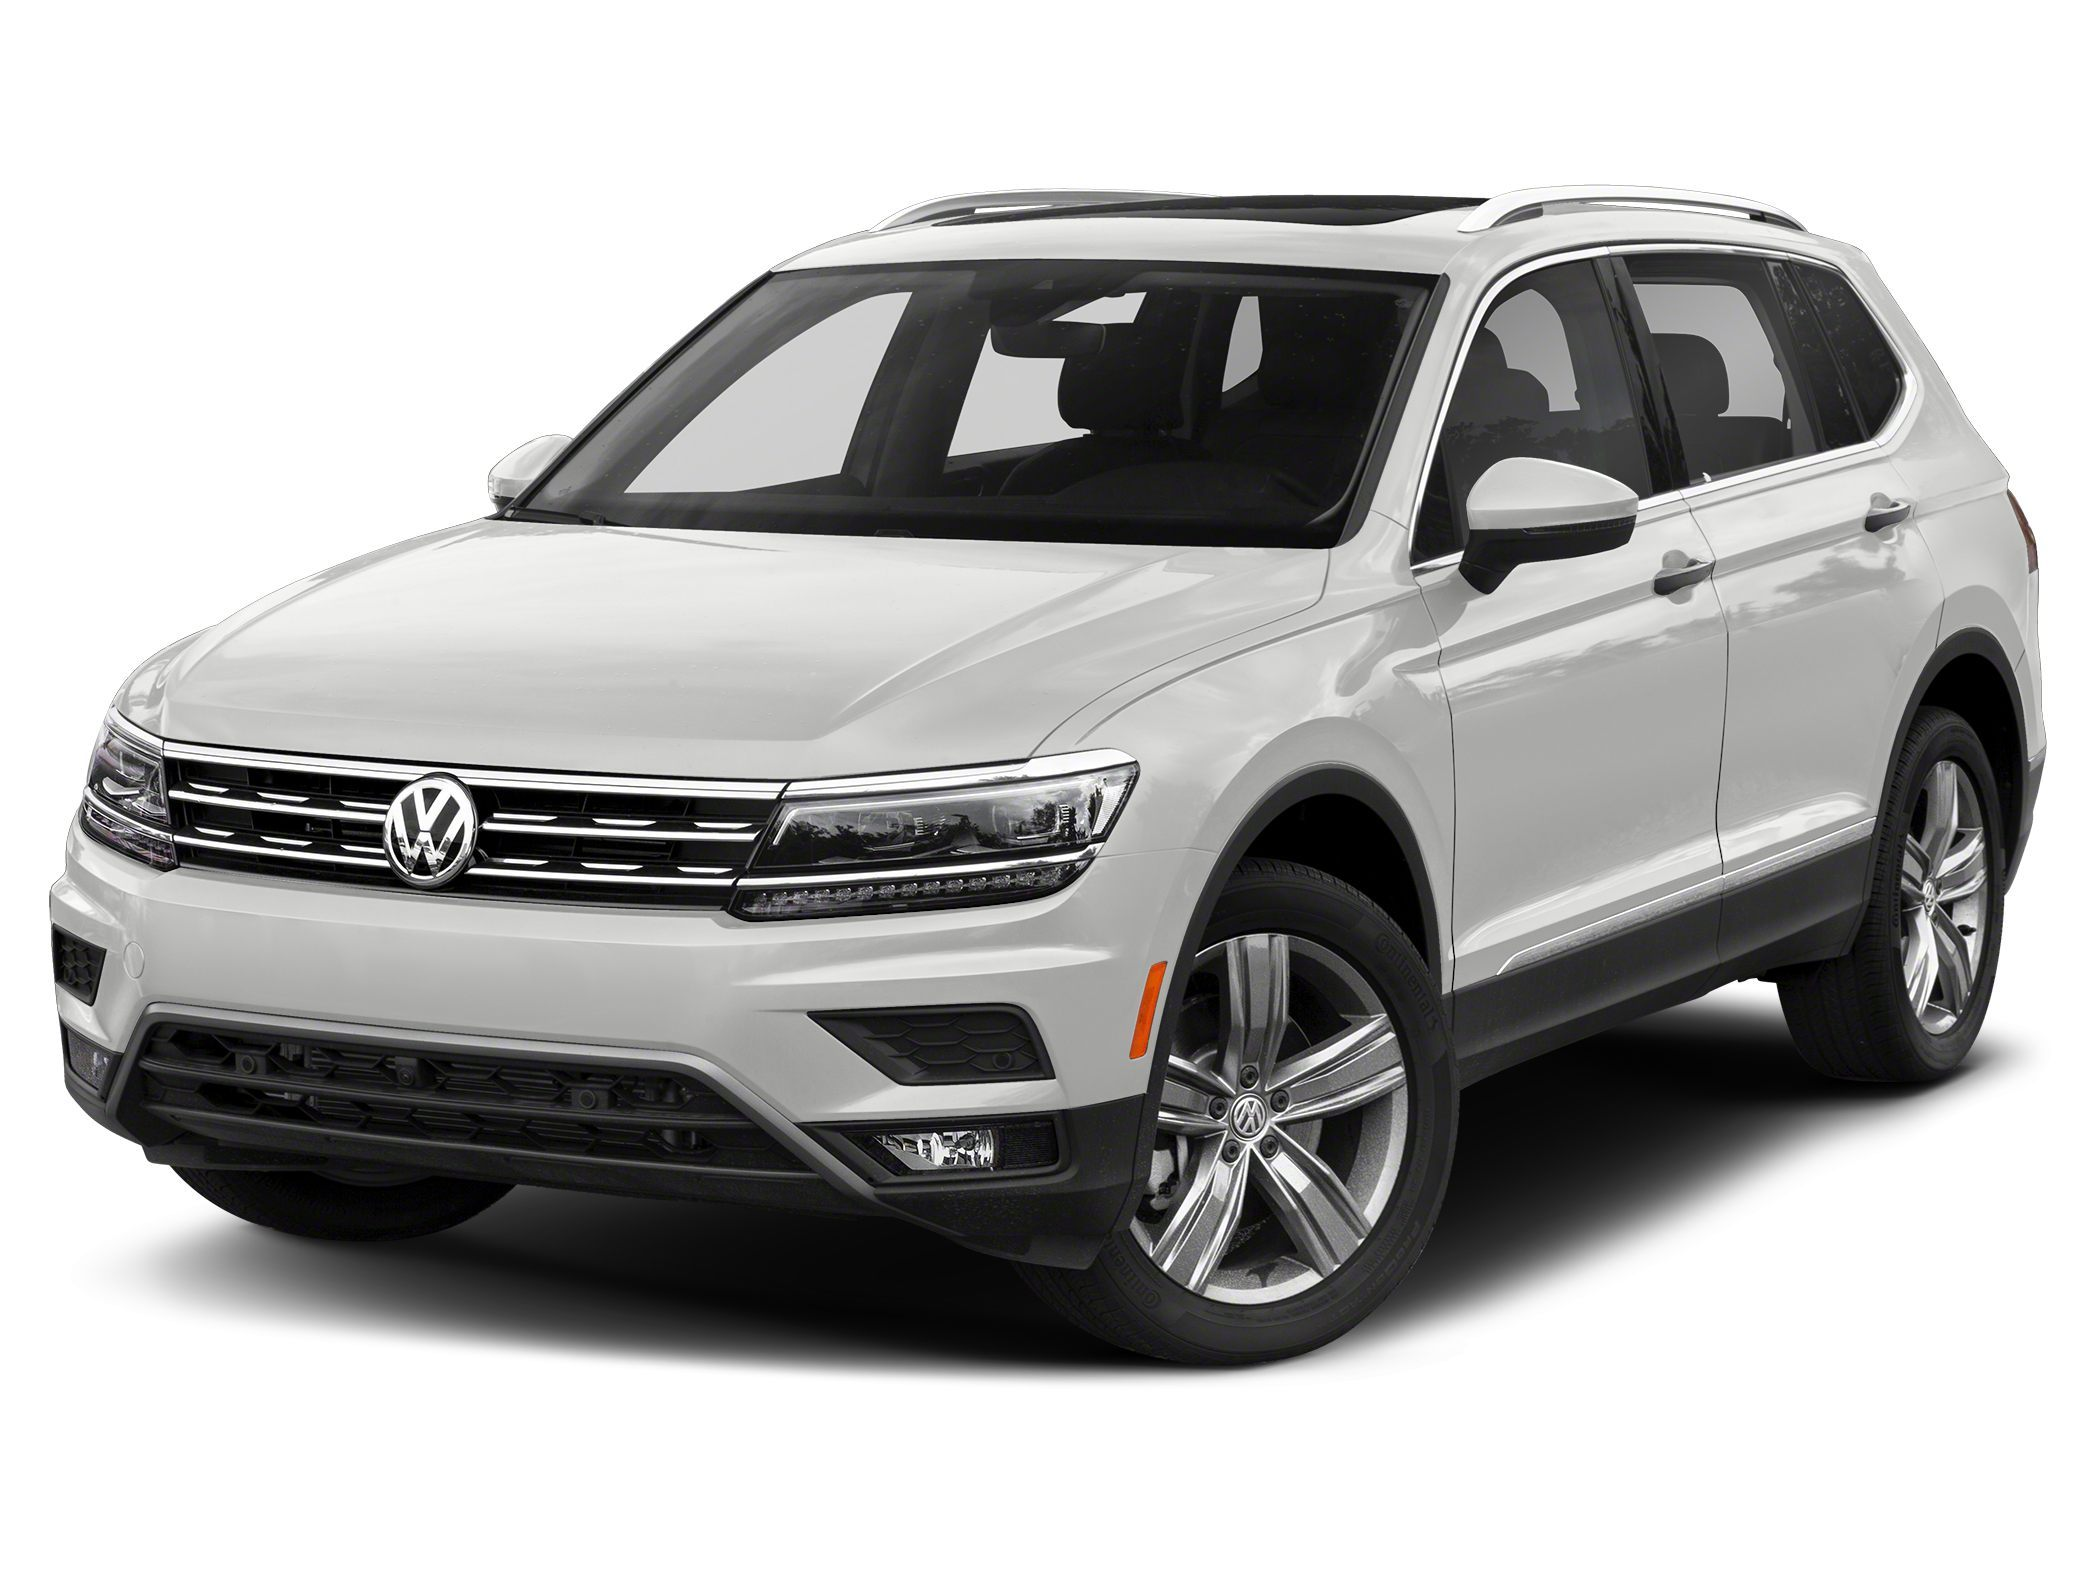 New 2021 Volkswagen Tiguan For Sale At Zanchin Automotive Group Vin 3vv4b7ax5mm036836